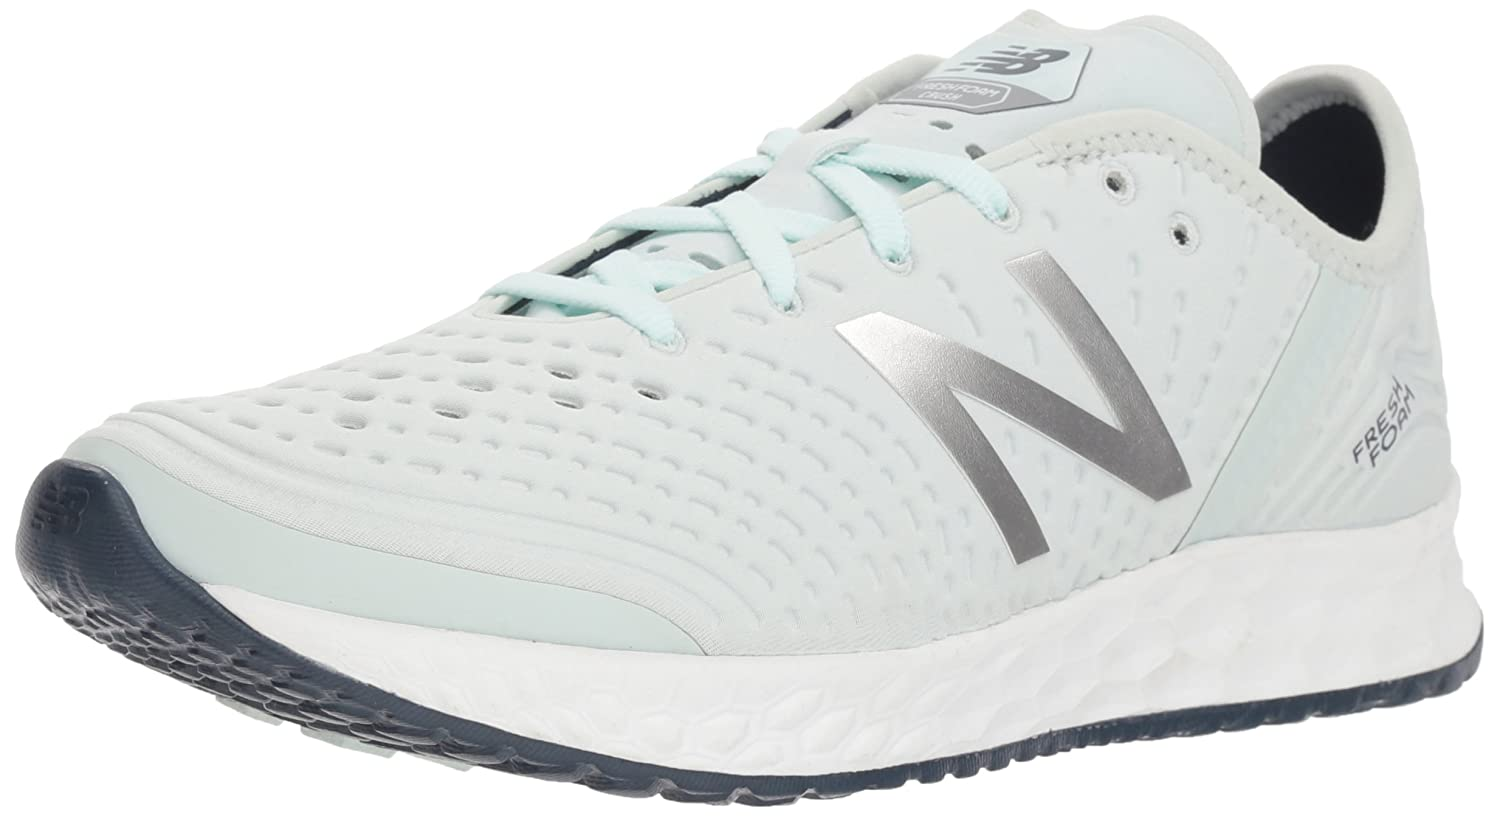 New Balance Women's Fresh Foam Crush V1 Cross Trainer B075R7BYTH 5 W US|Light Blue